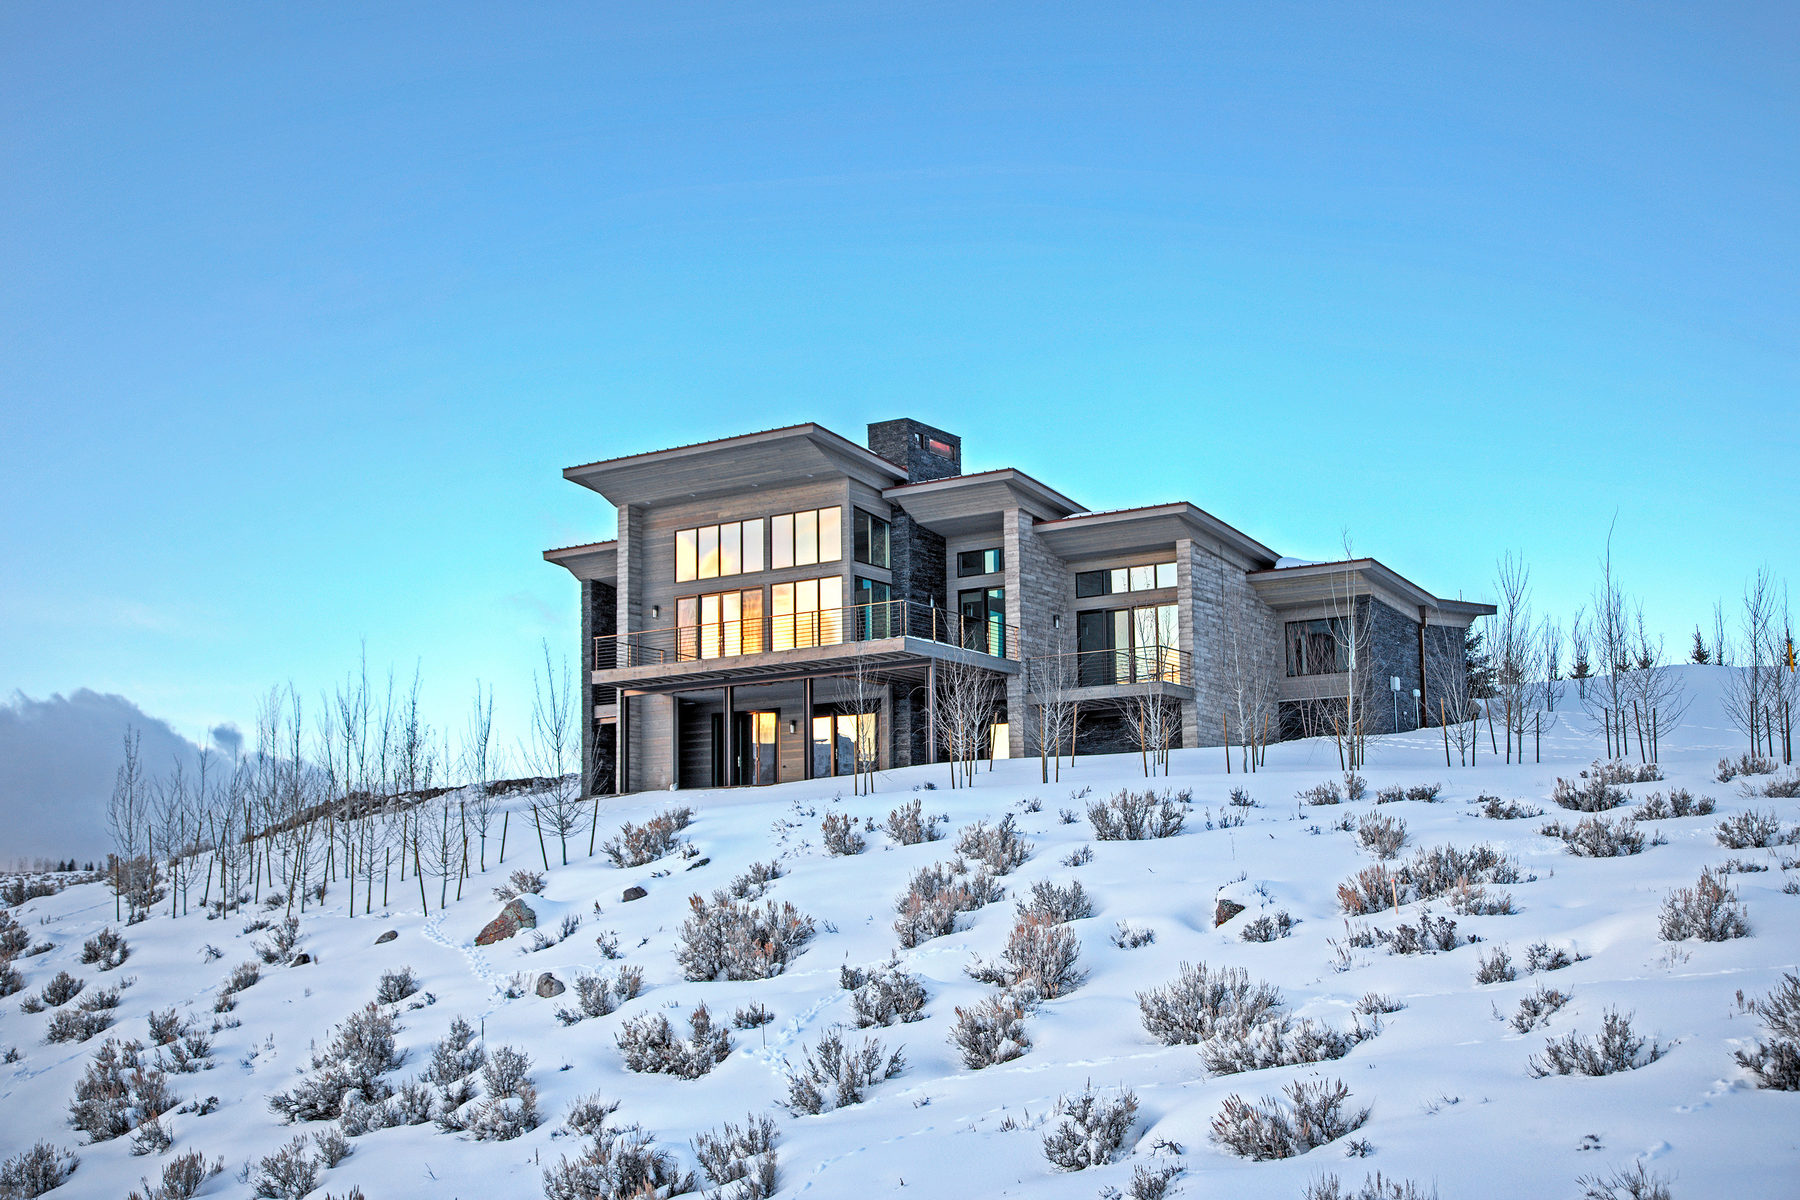 Single Family Home for Sale at New Nicklaus Golf Cabin Promontory 6407 Golden Bear Lp W Park City, Utah 84098 United States